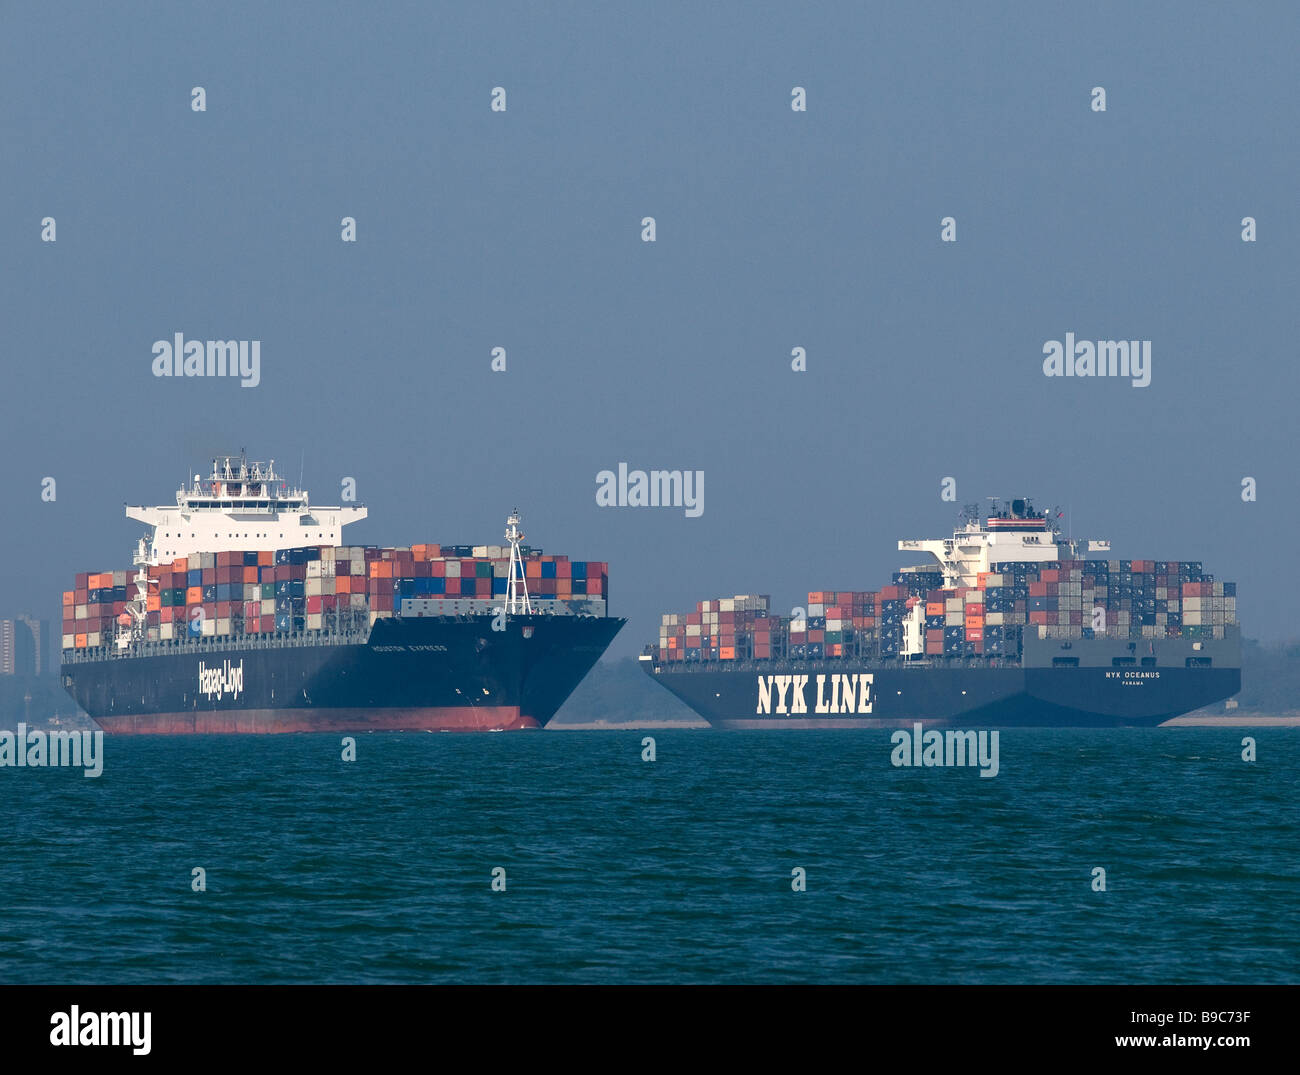 Container ships Houston Express (left) and NYK Oceanus passing each other in Southampton Water UK - Stock Image